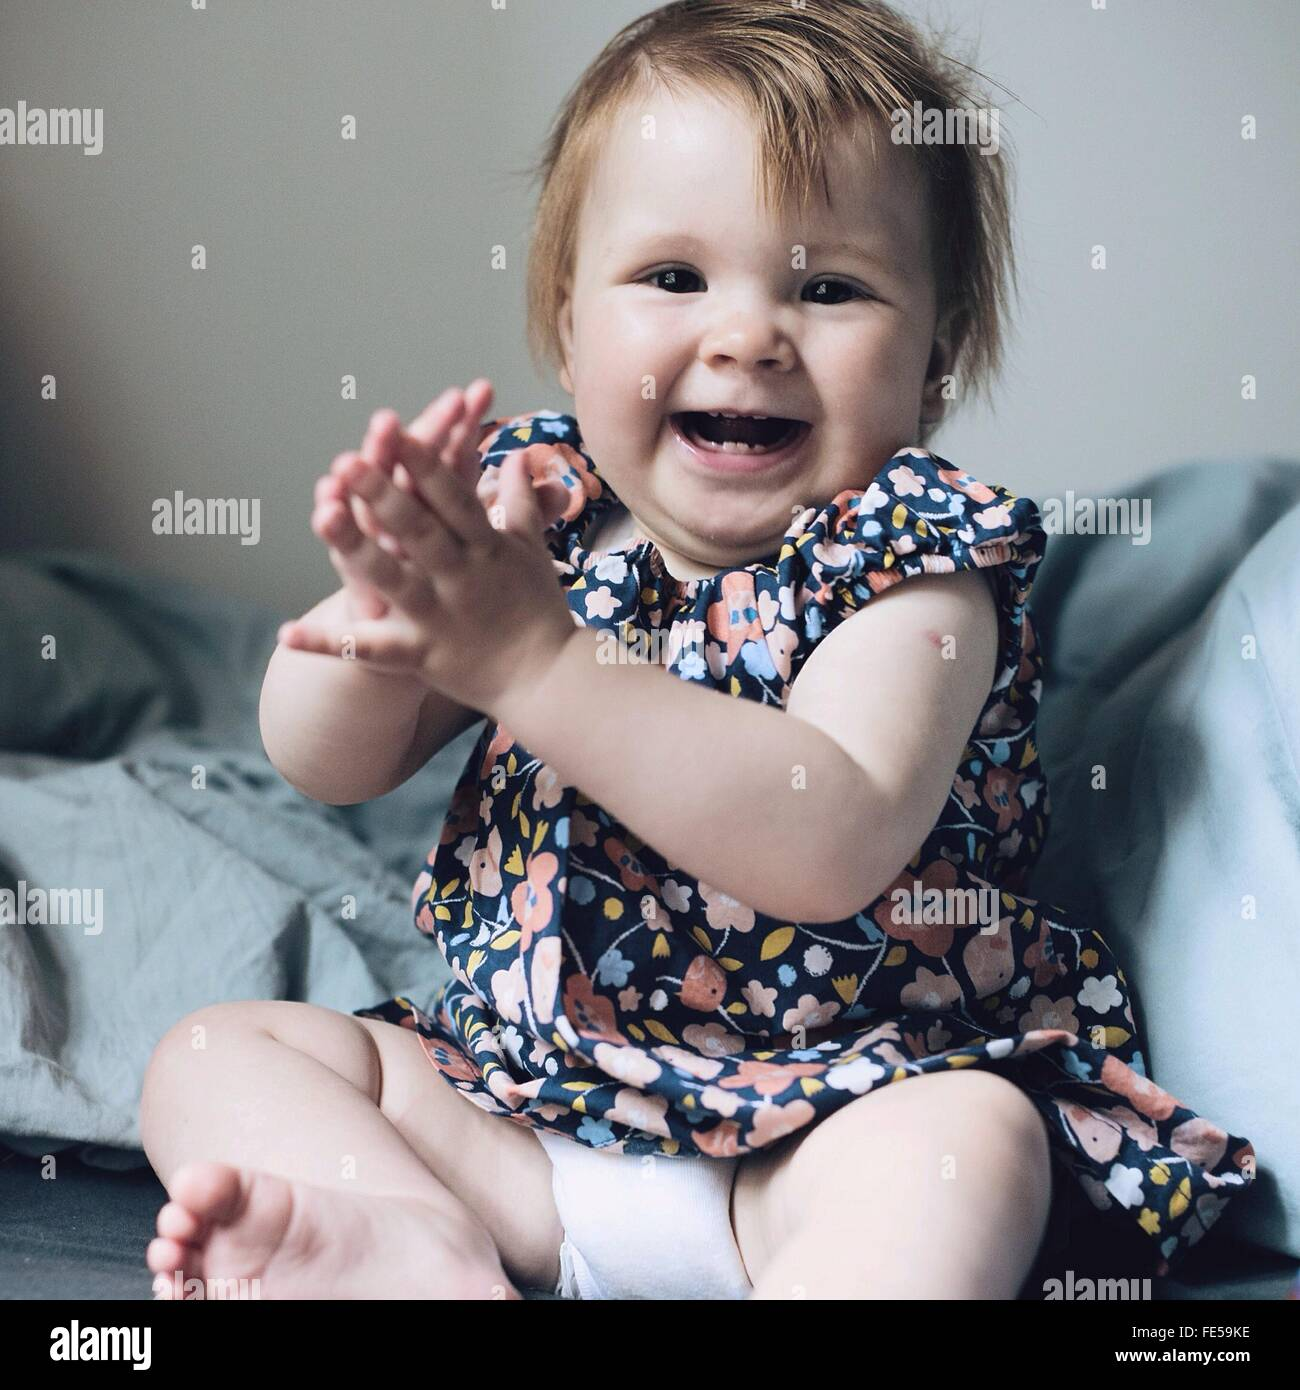 Baby Girl Laughing Photo Stock